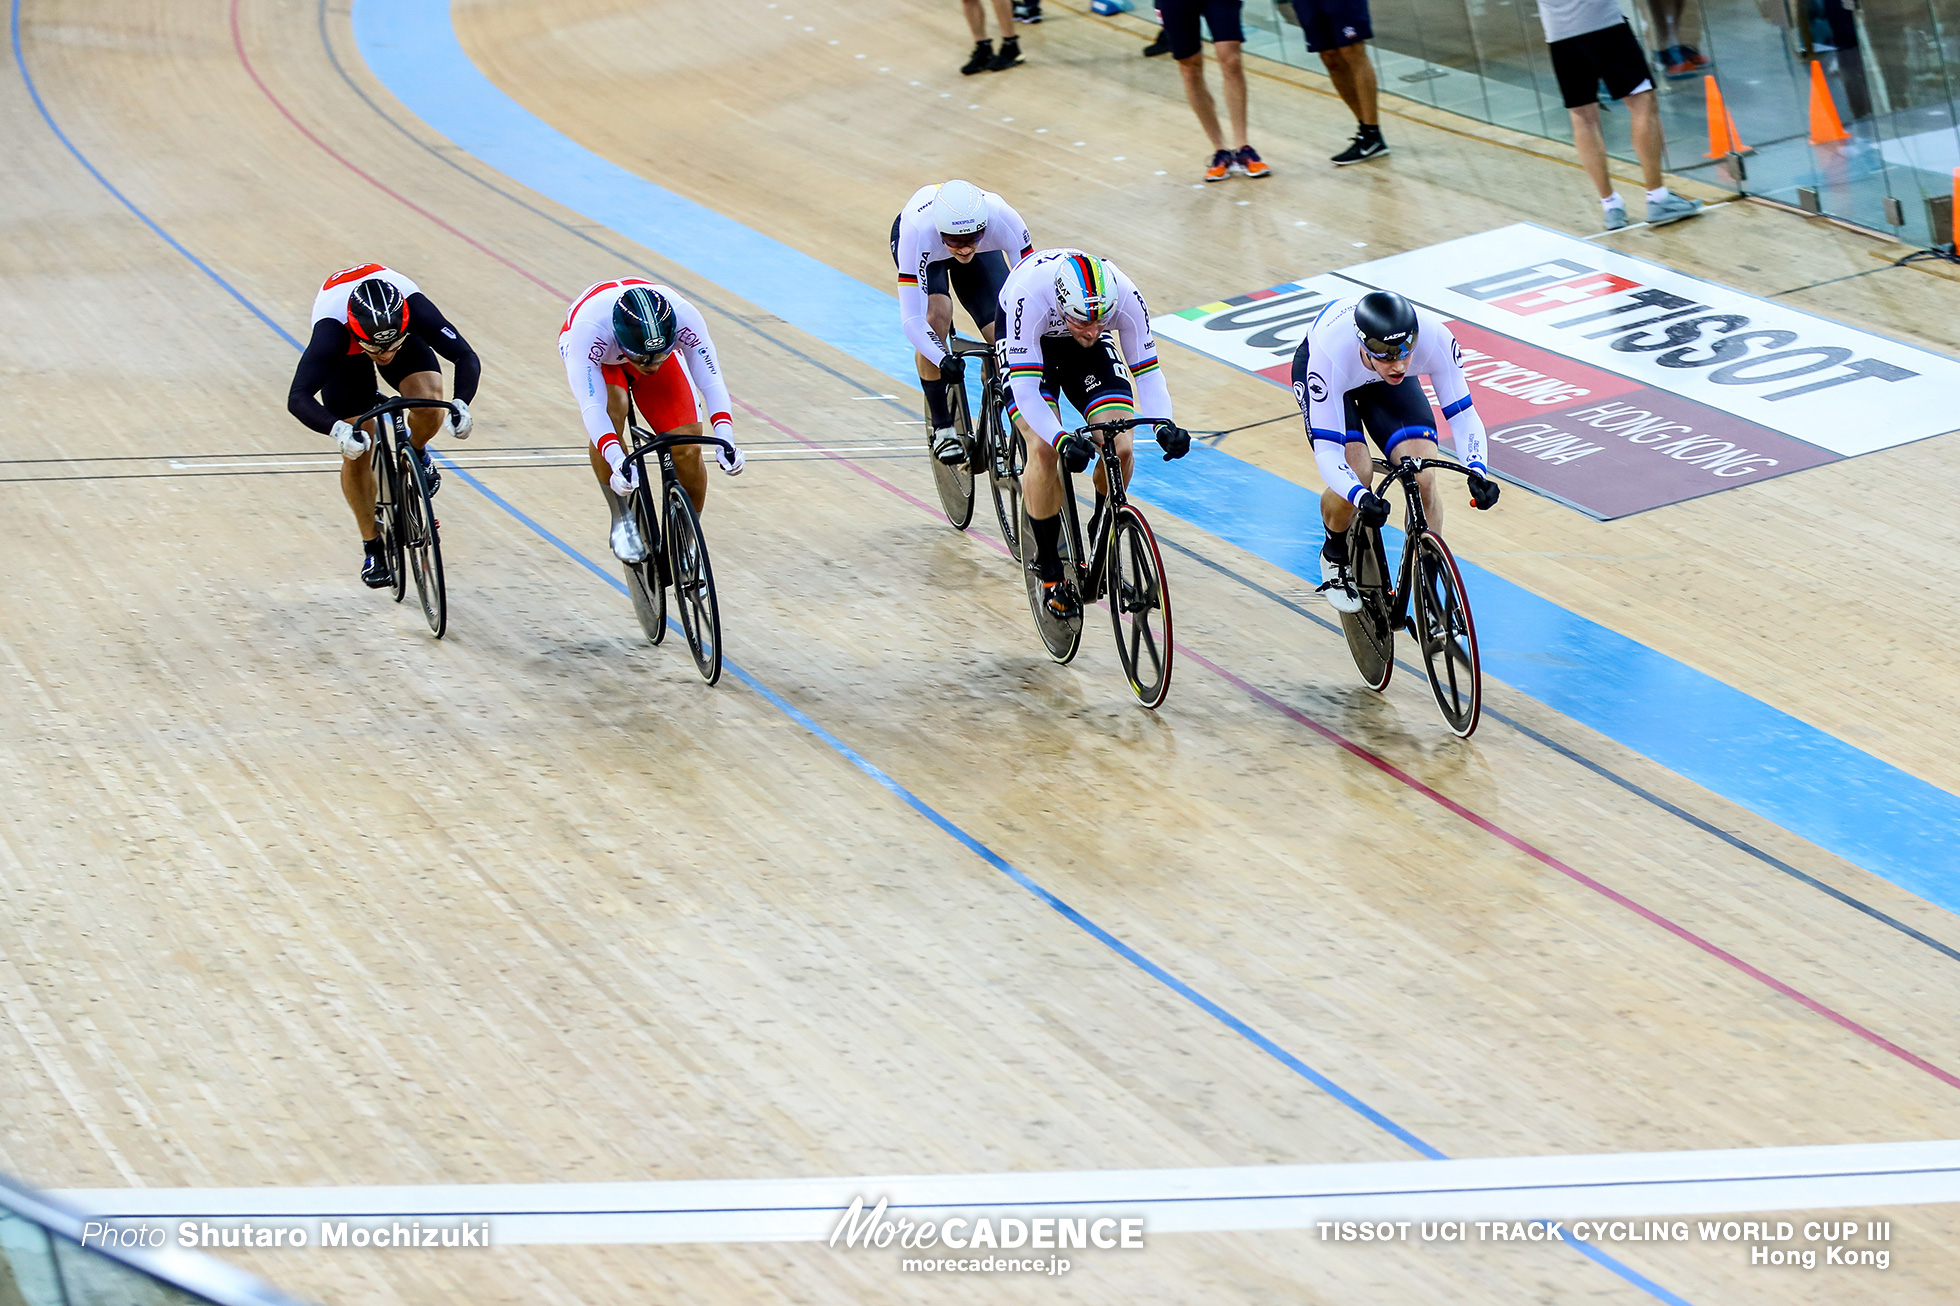 2nd Round / Men's Keirin / TISSOT UCI TRACK CYCLING WORLD CUP III, Hong Kong